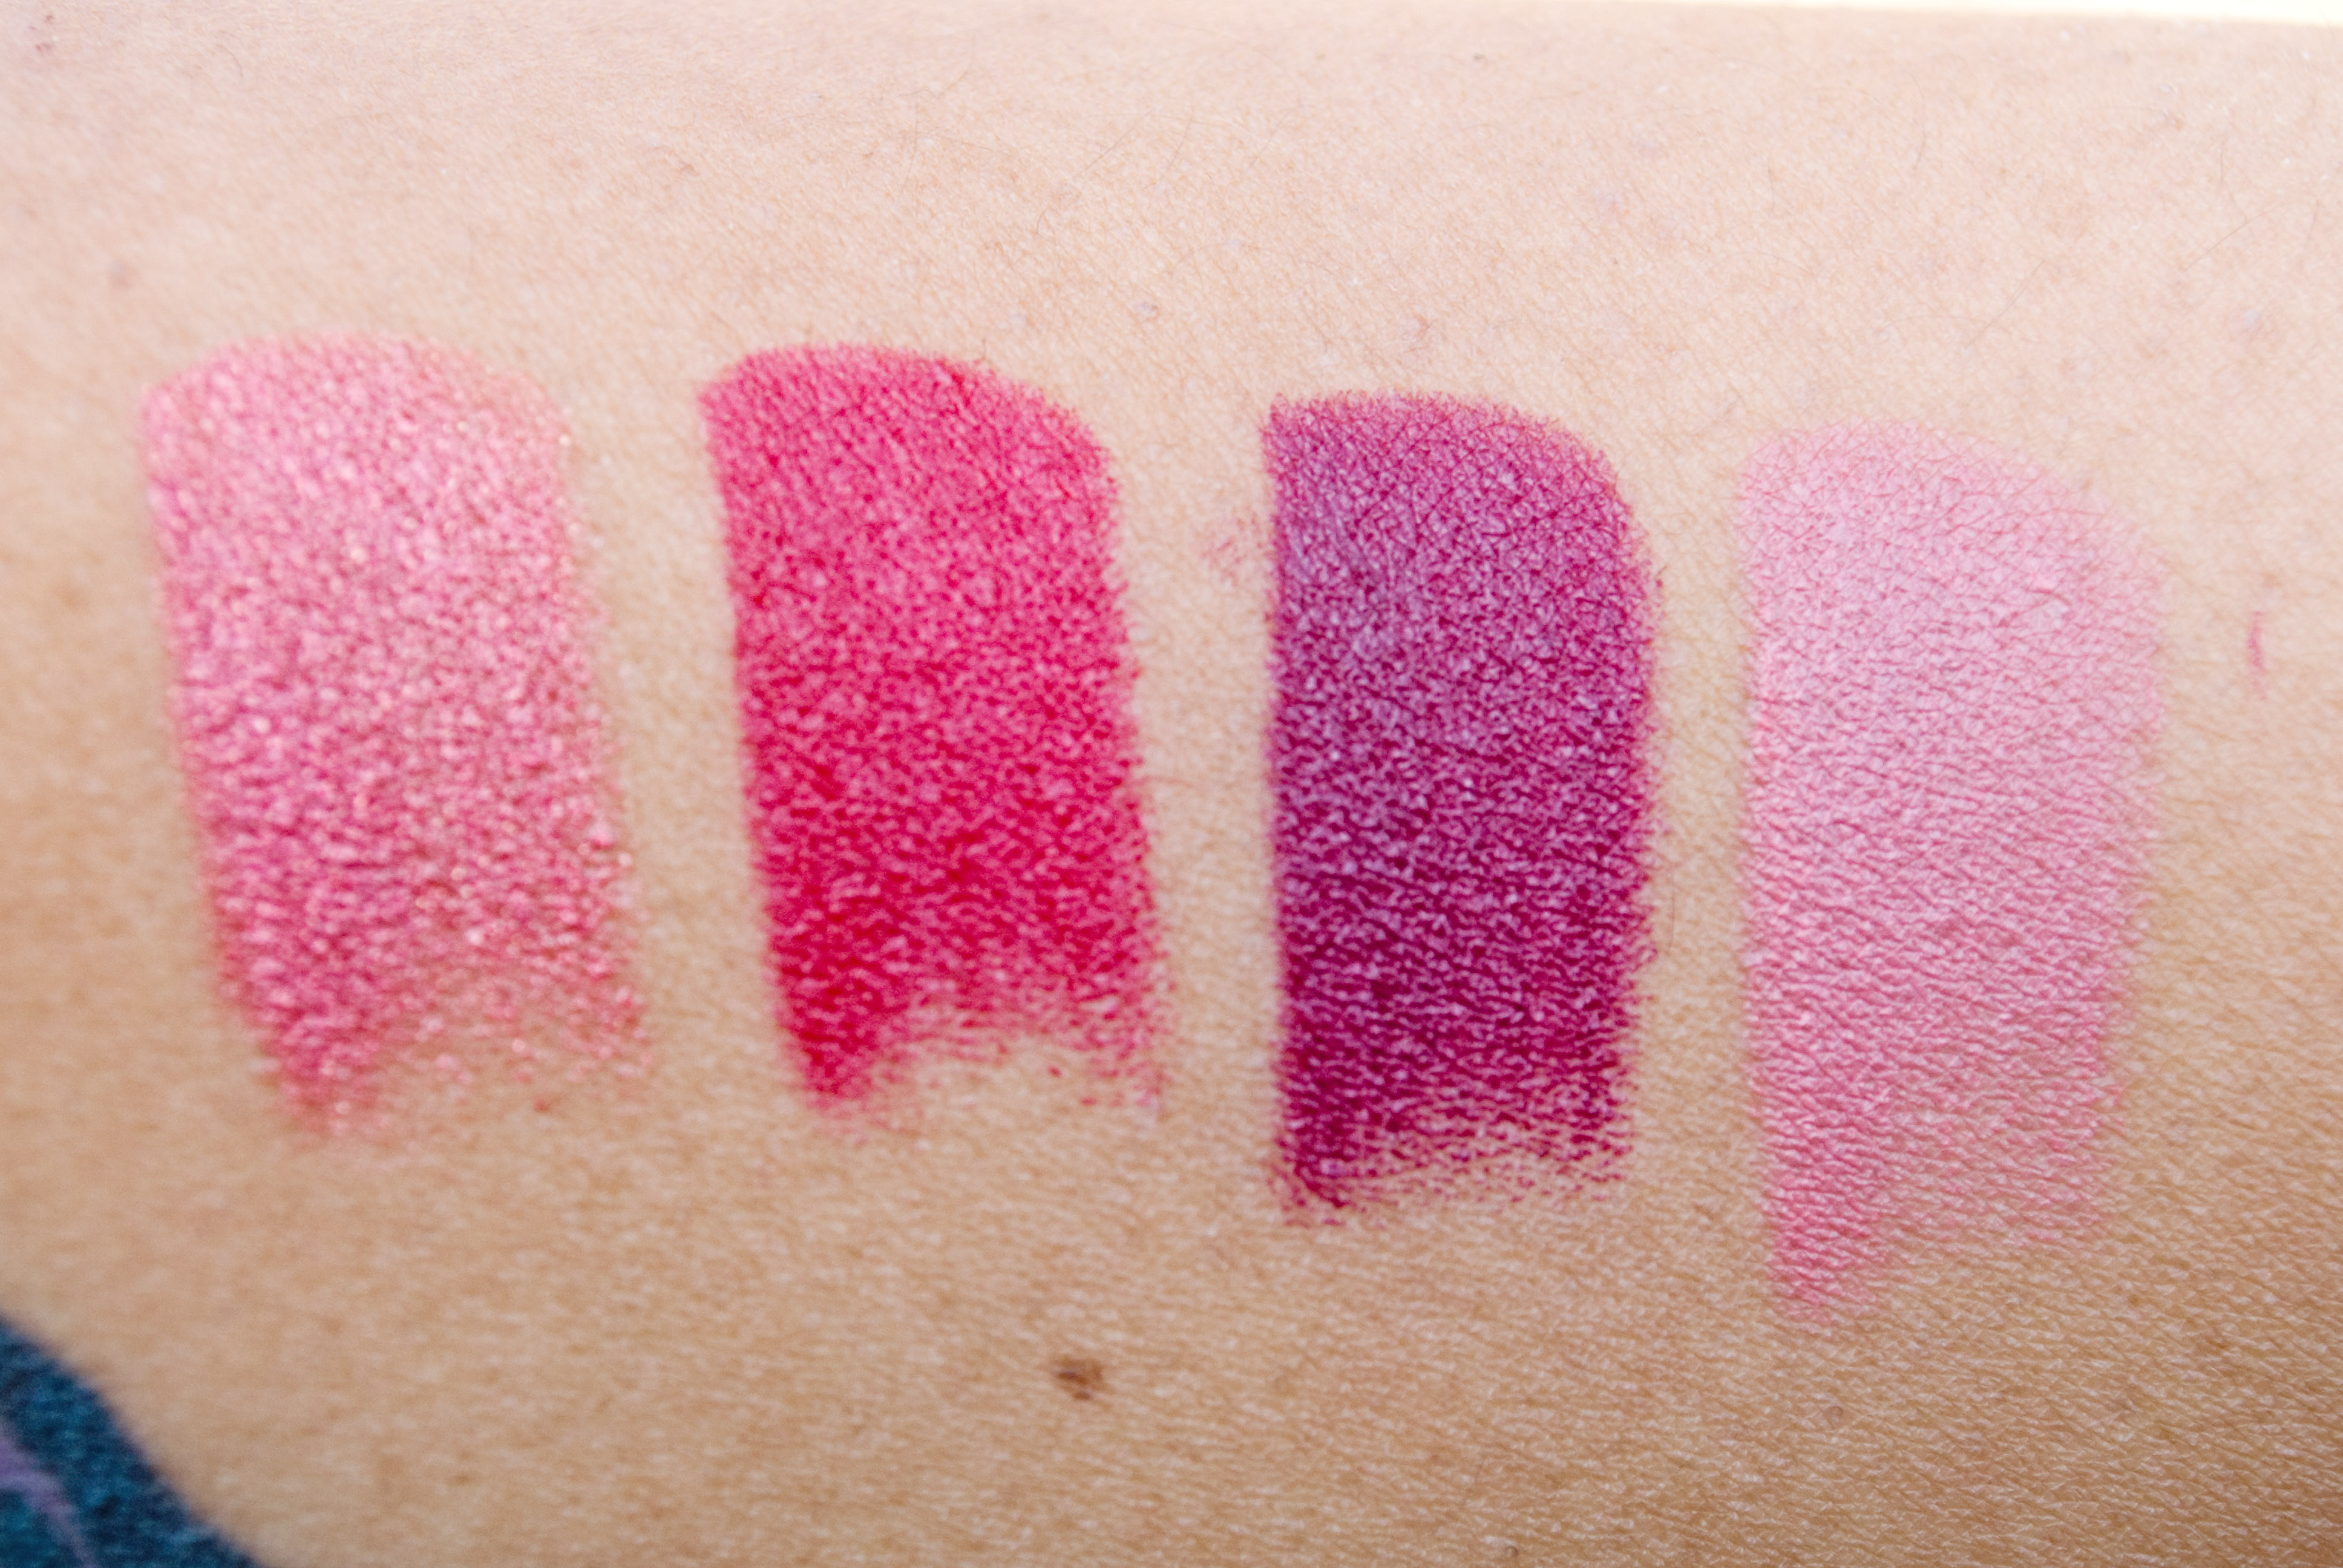 Affordable Color for Your Lips Featuring Nicka K Hydro Lipsticks http://honeygirlsworld.com